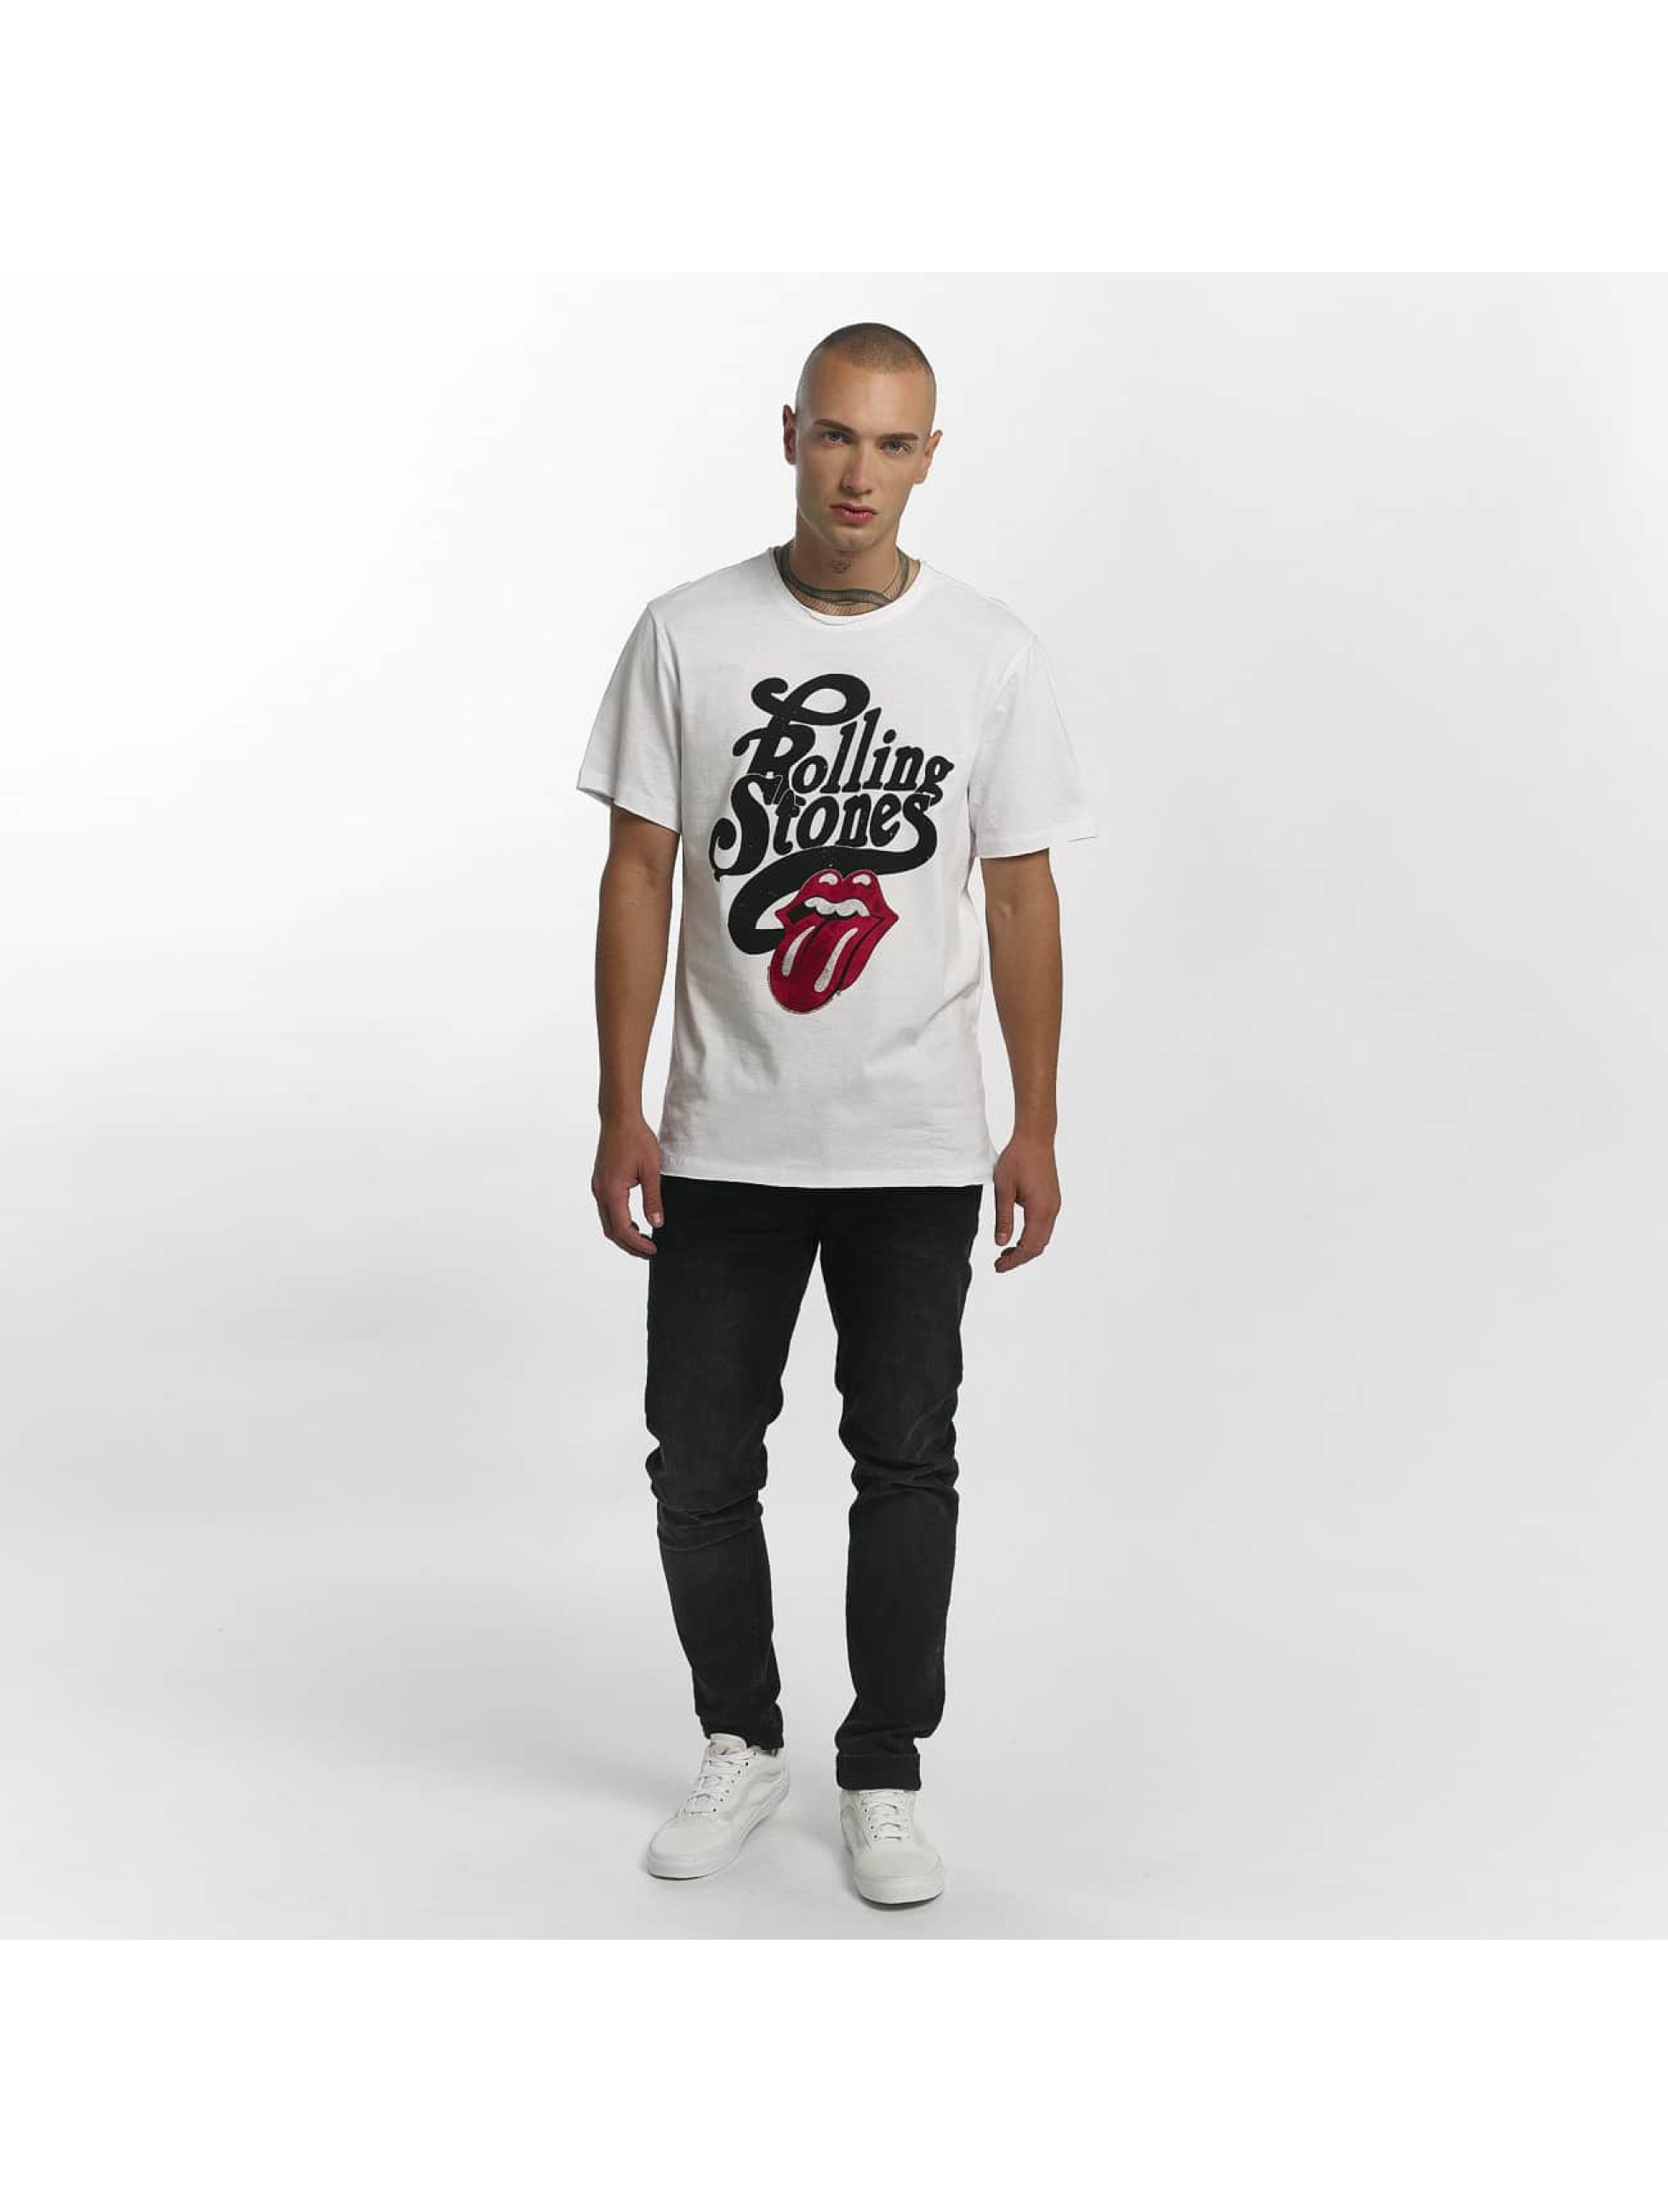 Amplified T-Shirt The Rolling Stones Licked white